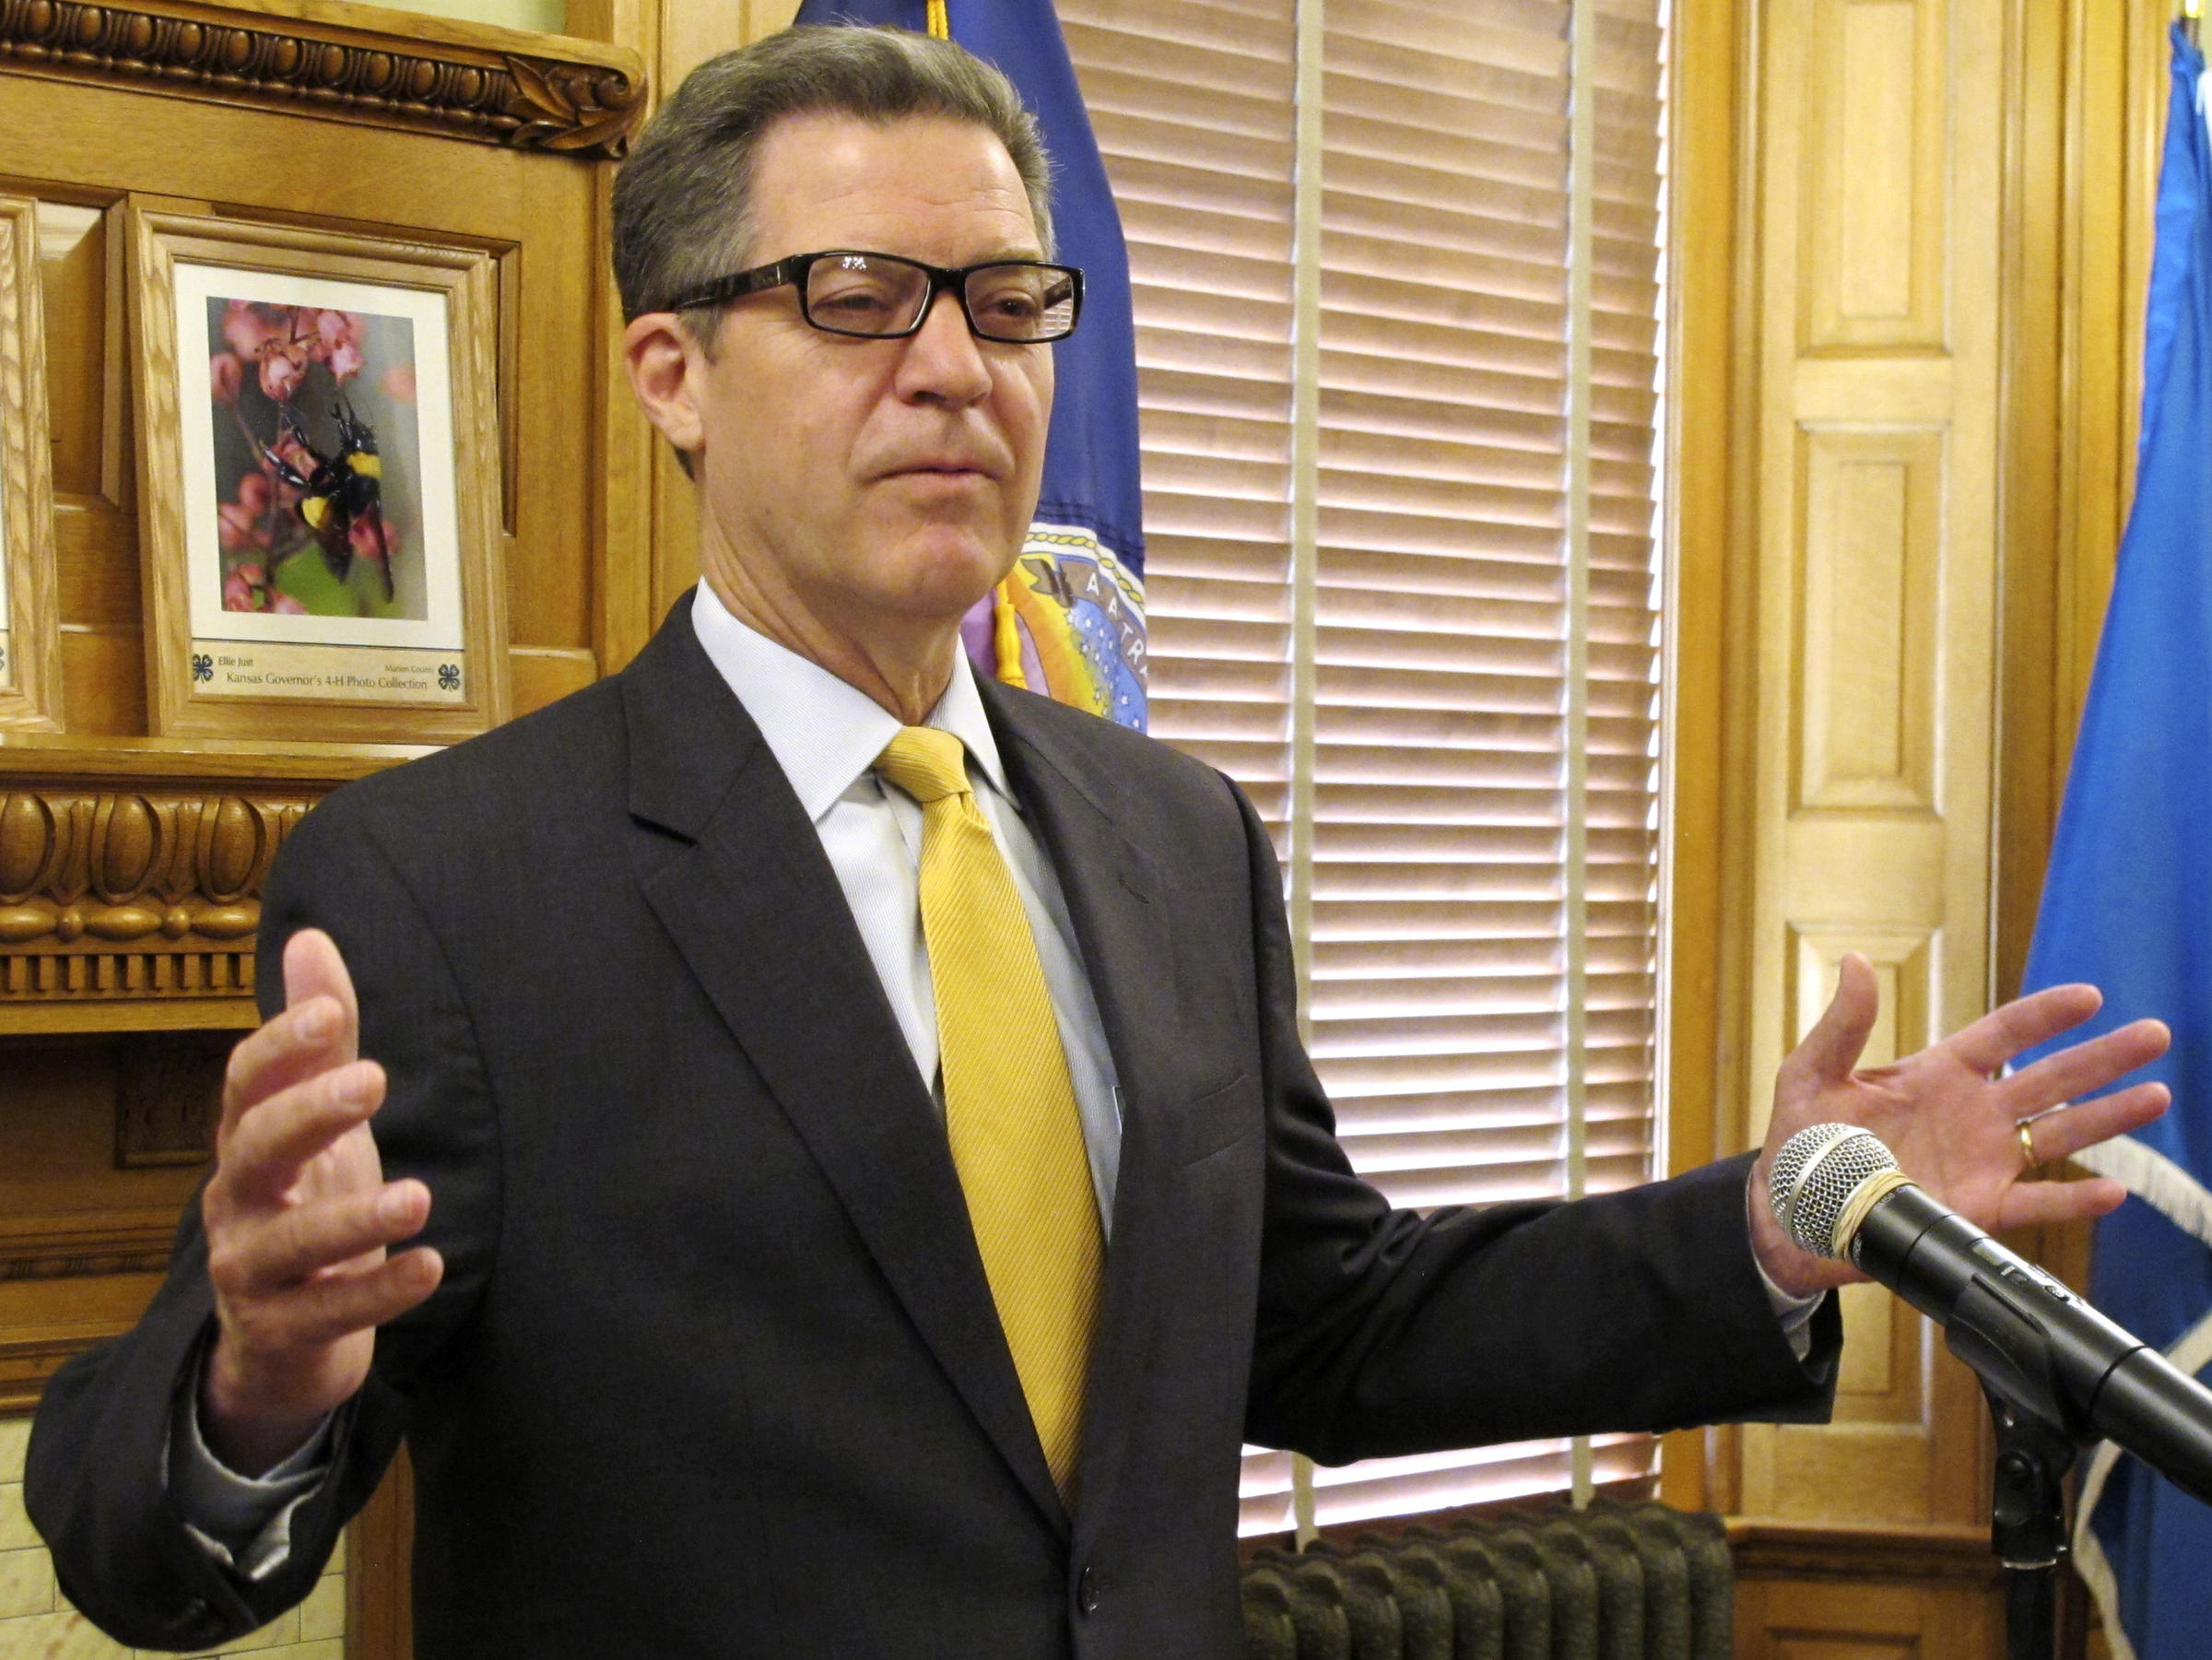 Gov. Sam Brownback to be nominated for position in Trump Administration